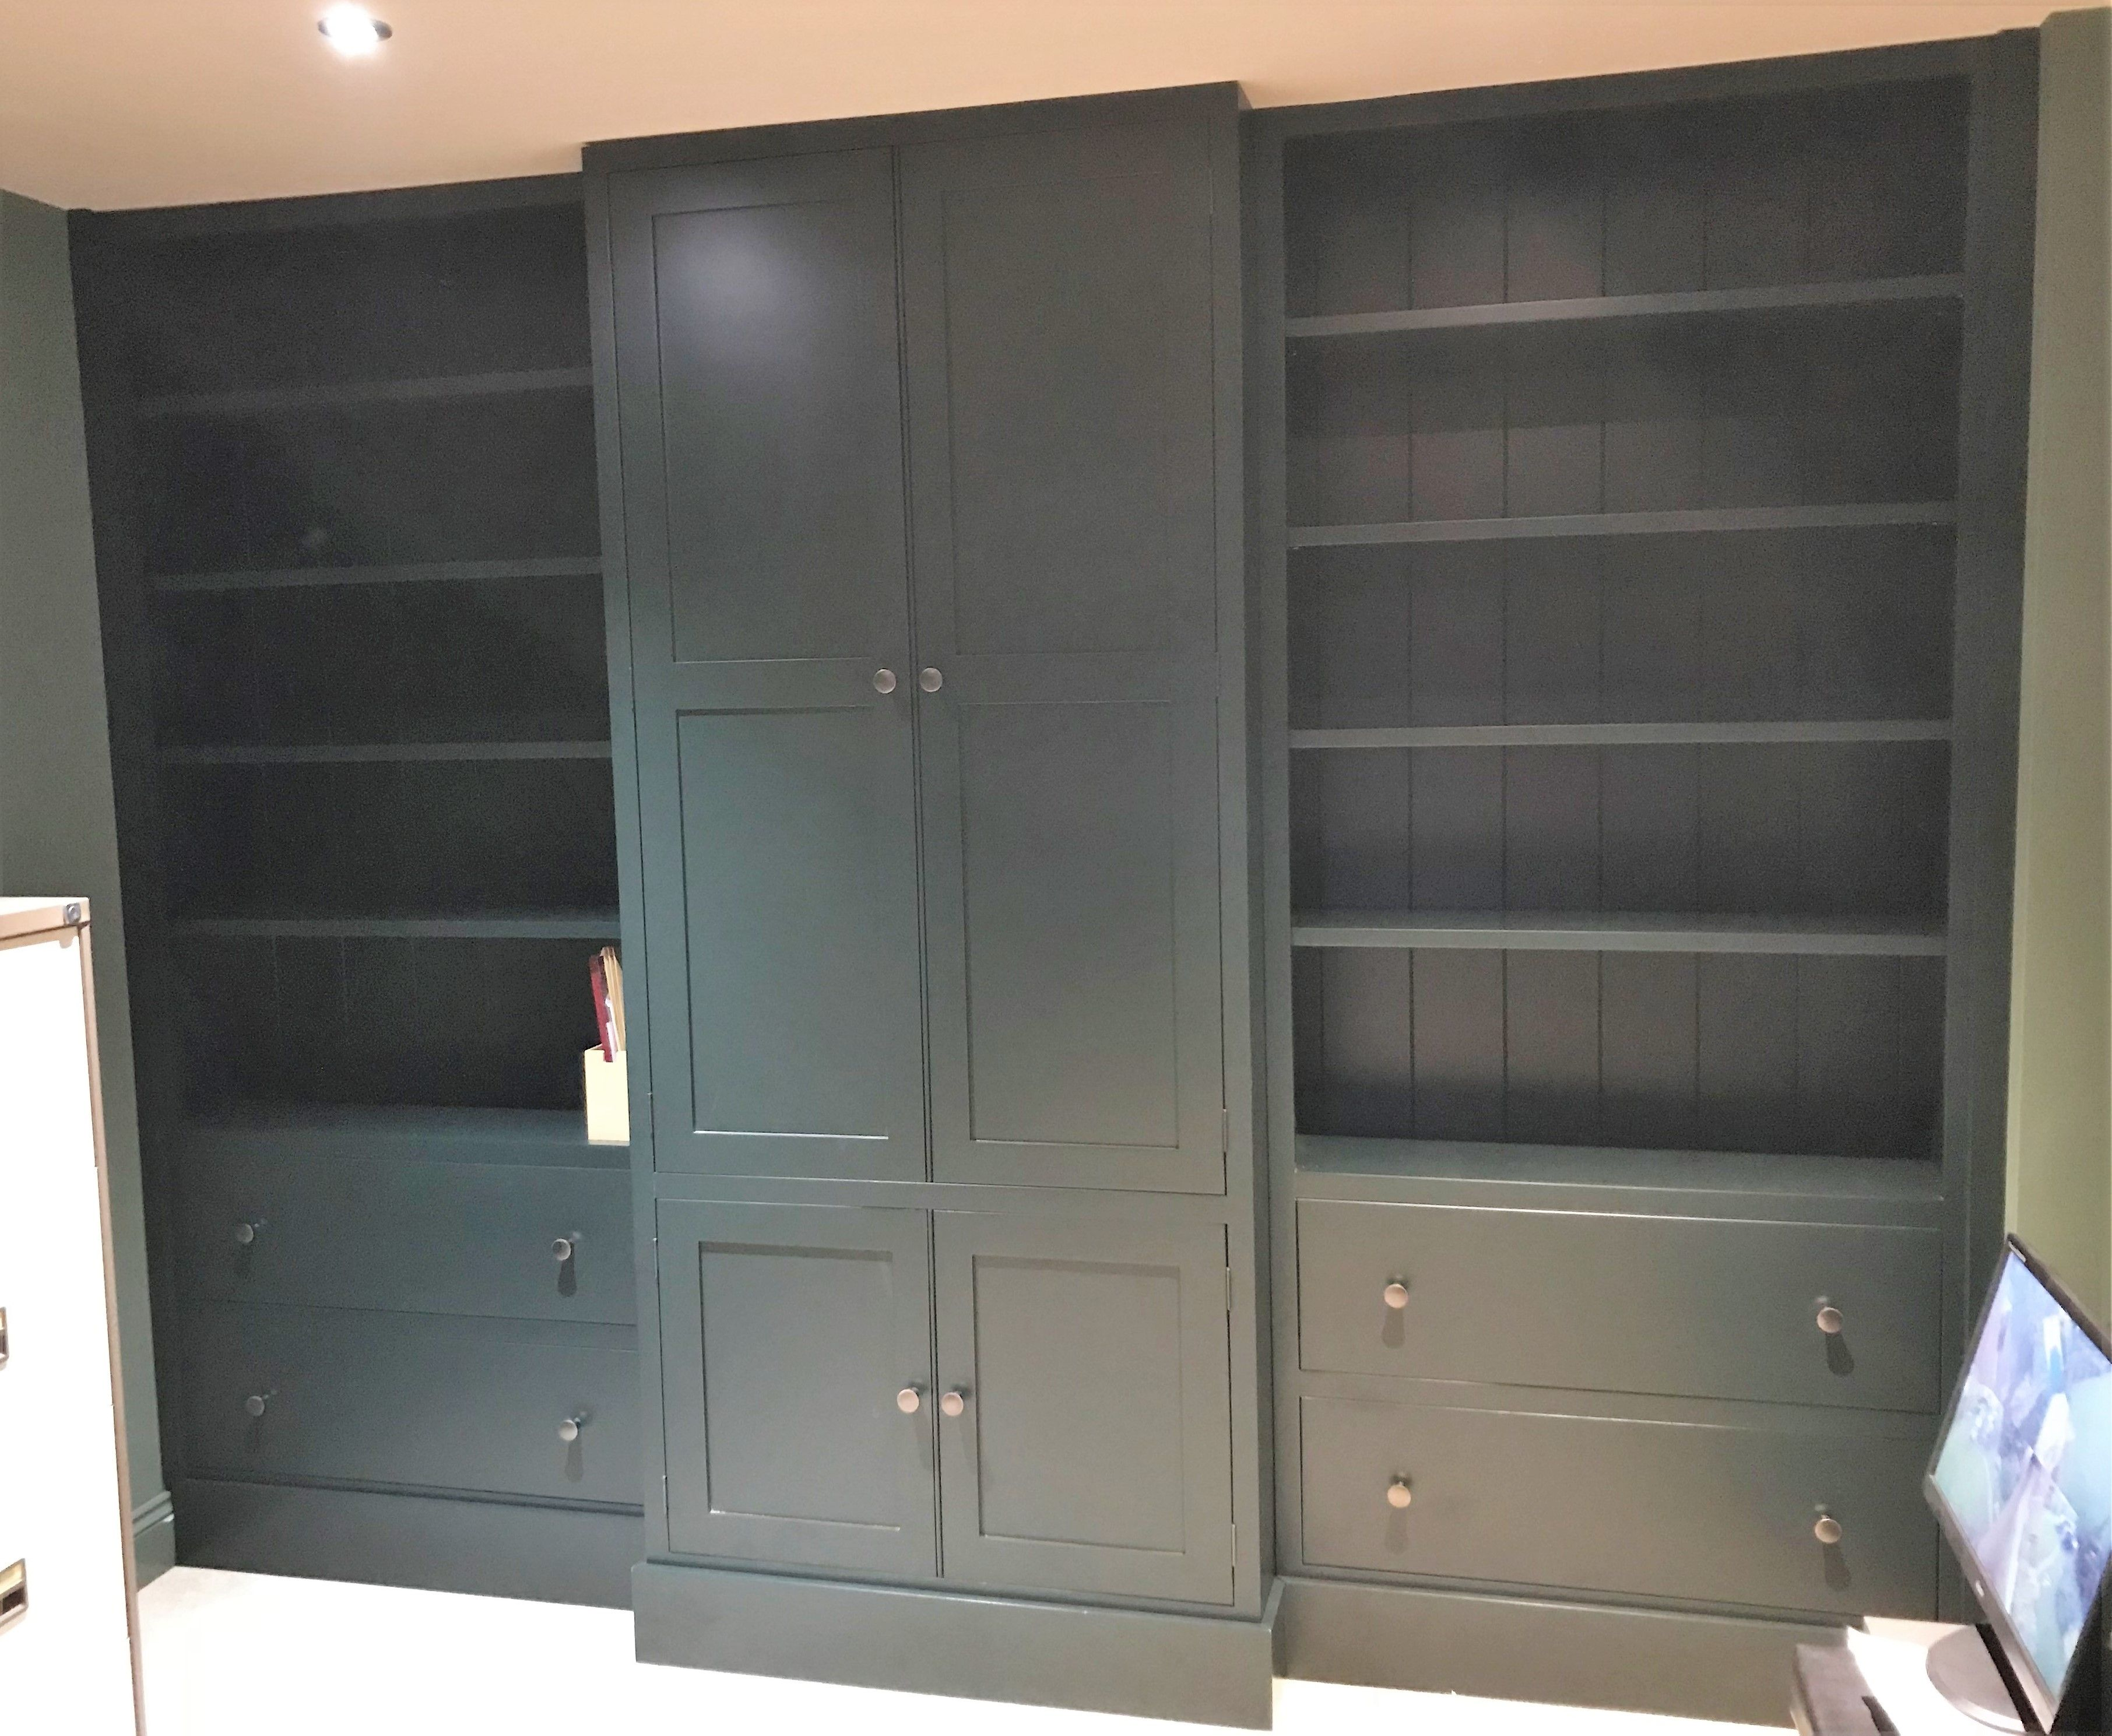 A Study Bookcase Unit Painted In F B Studio Green Fitted And Made To Order By Cobwebs Furniture Company Tall Cabinet Storage Pine Furniture Furniture